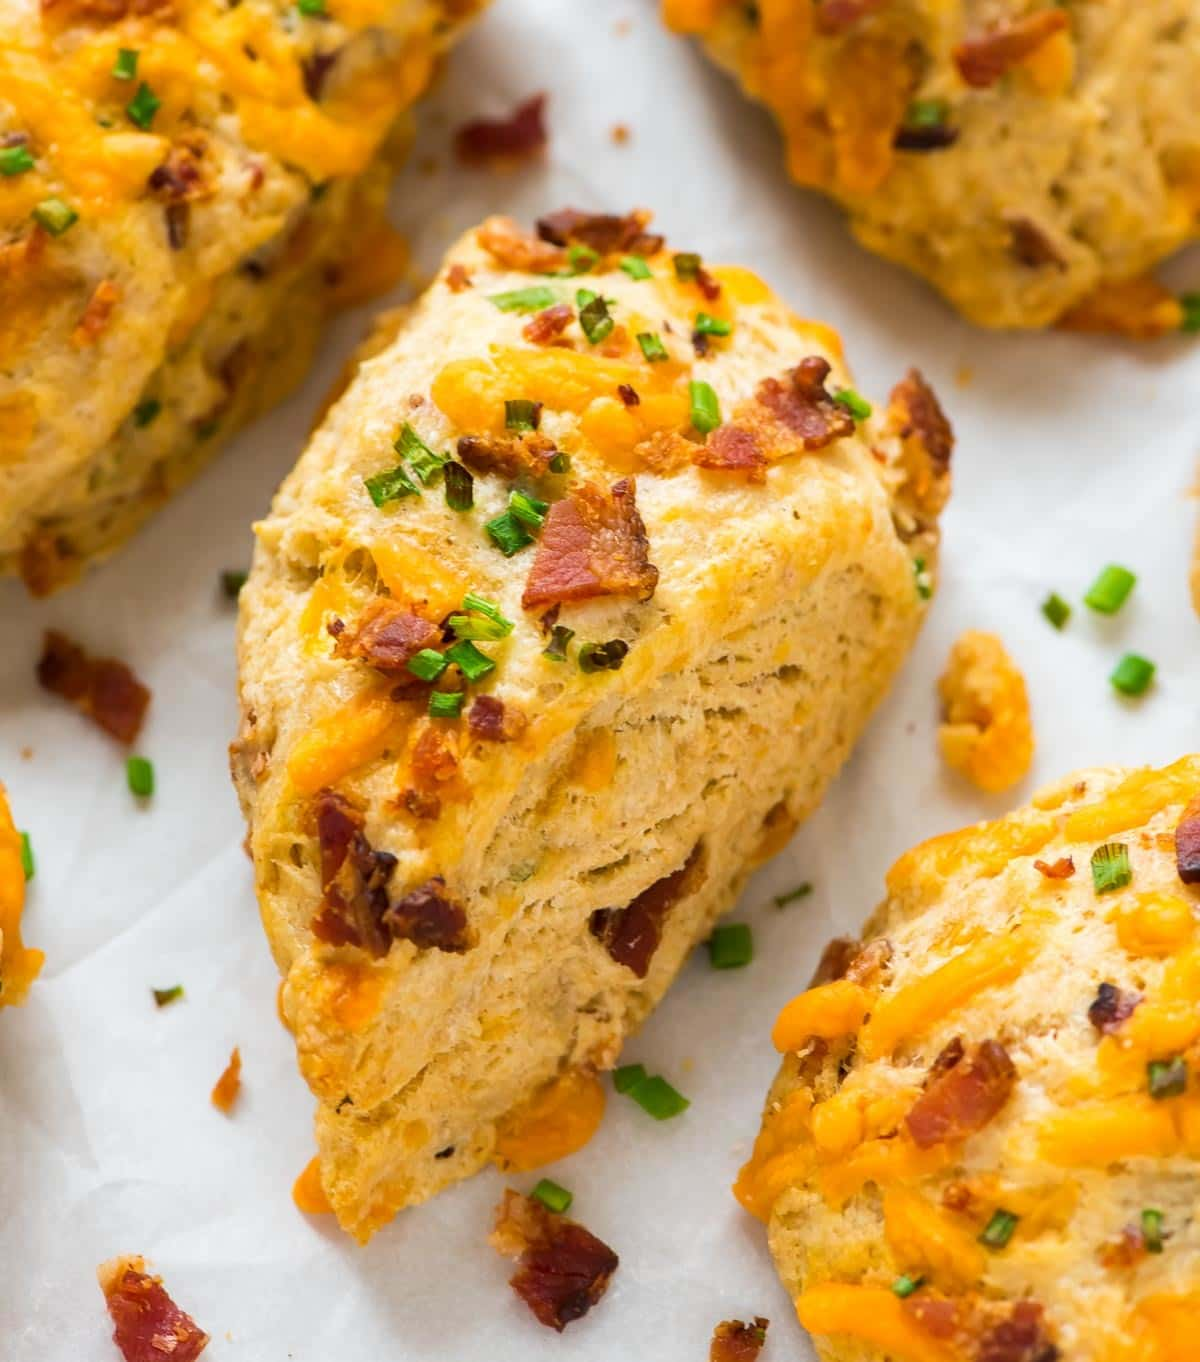 Savory scone idea: Bacon Cheddar and Chive. Easy recipe that yields tender, buttery scones every time. Recipe at wellplated.com   @wellplated